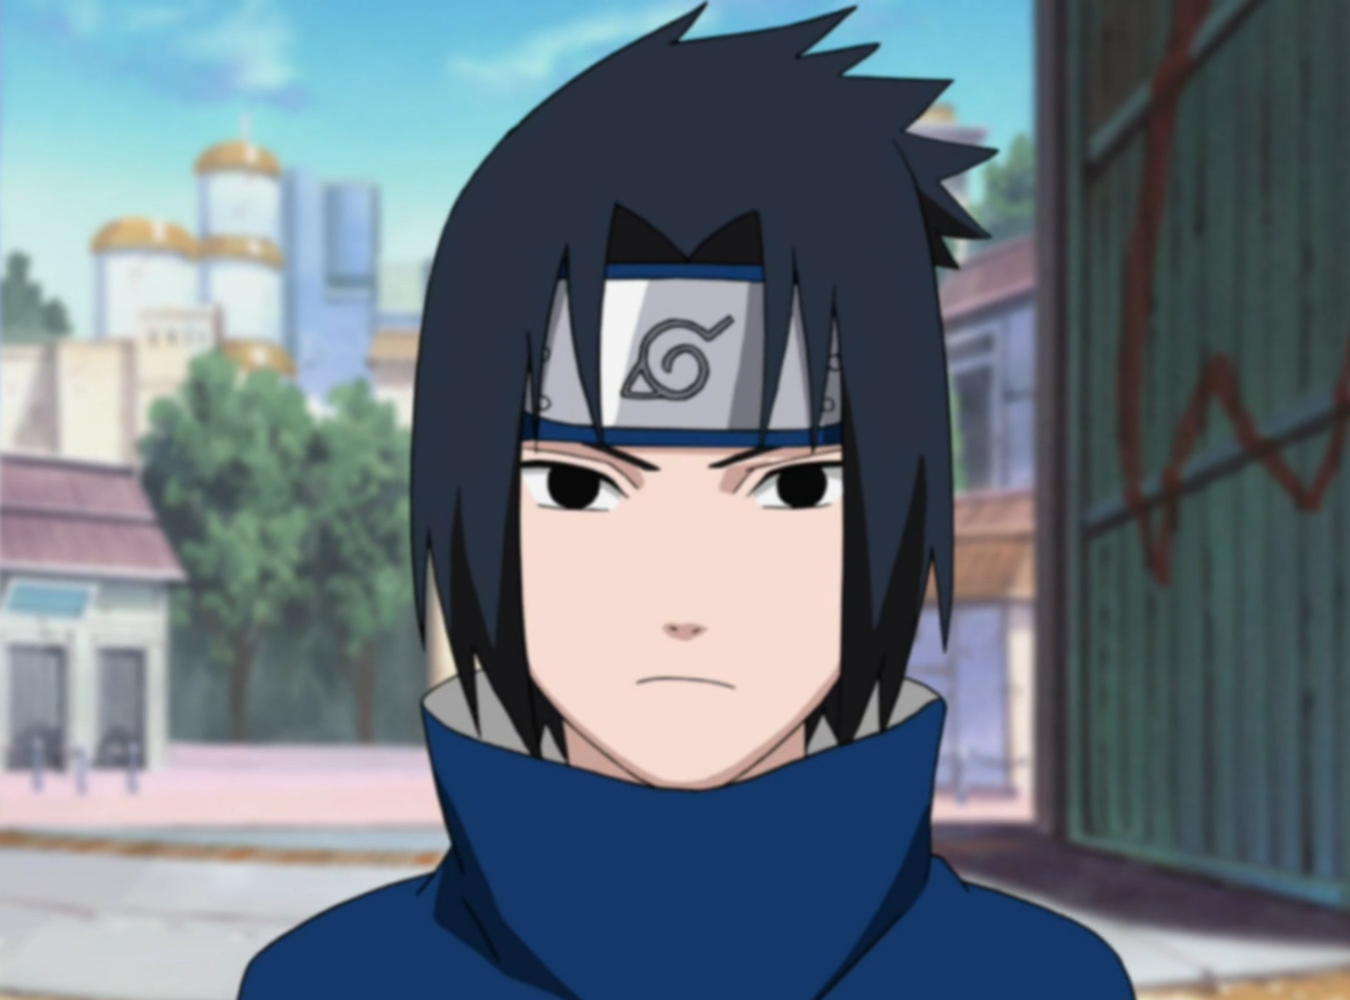 Naruto dating sim sasuke ending a relationship